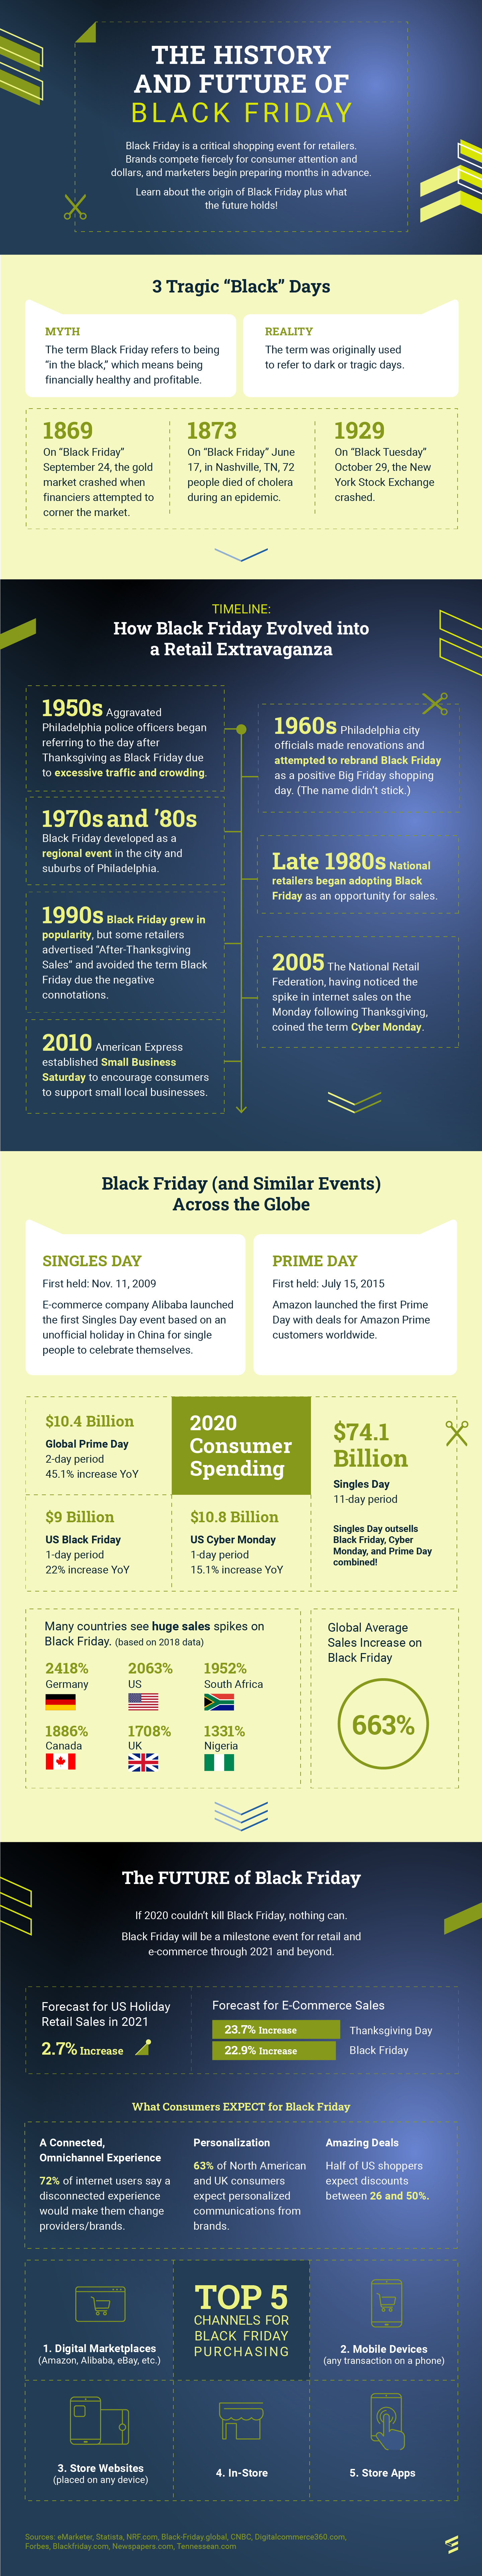 Infographic: The History and Future of Black Friday